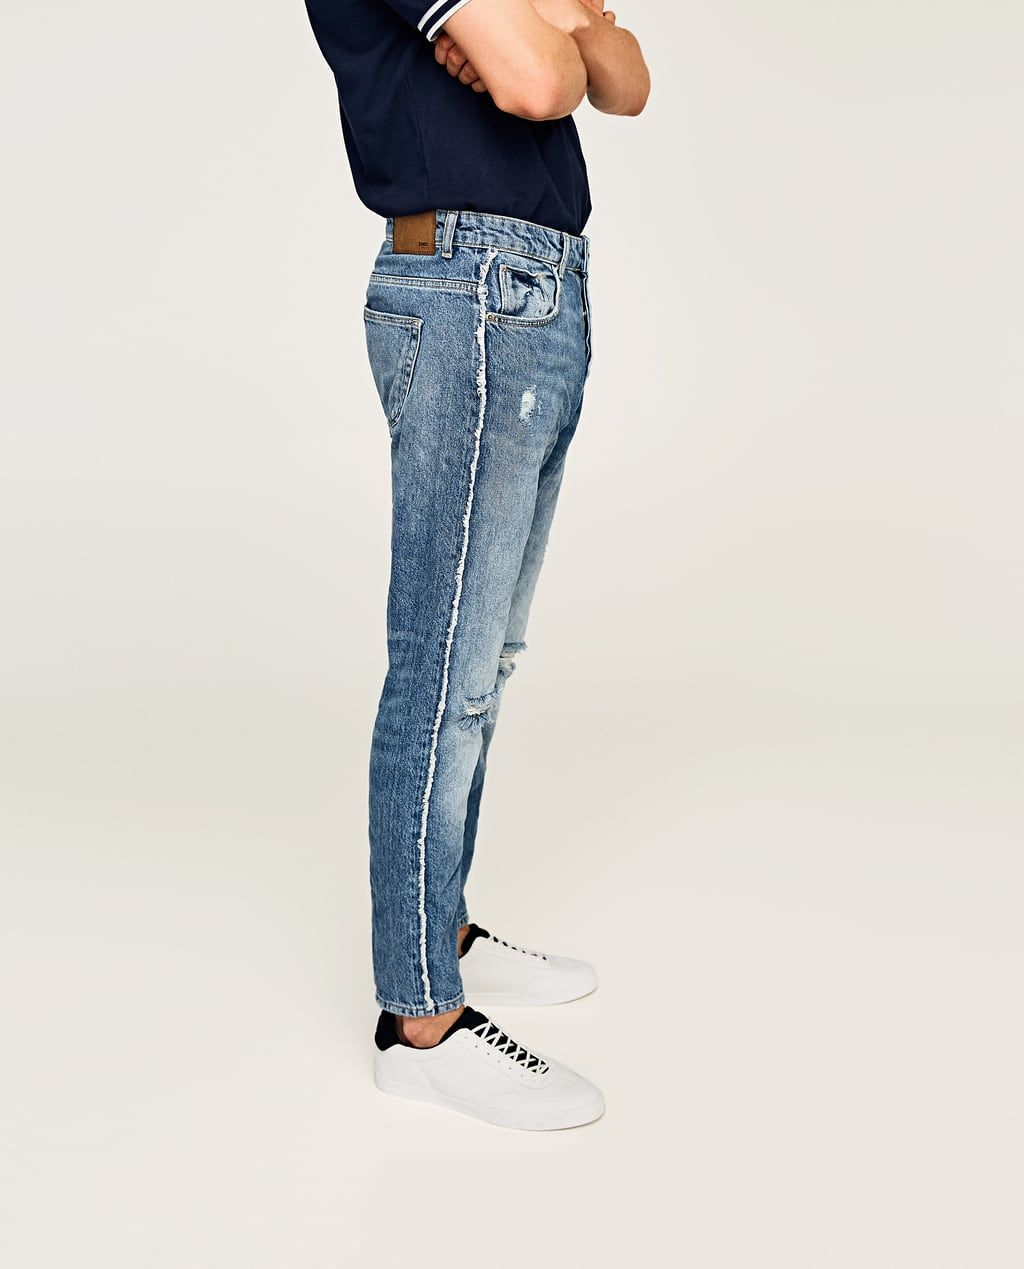 Slim Fit Jeans With Fringe View All Jeans Man Sale Zara Hong Kong S A R Of China Denim Fashion Jeans Slim Fit Jeans